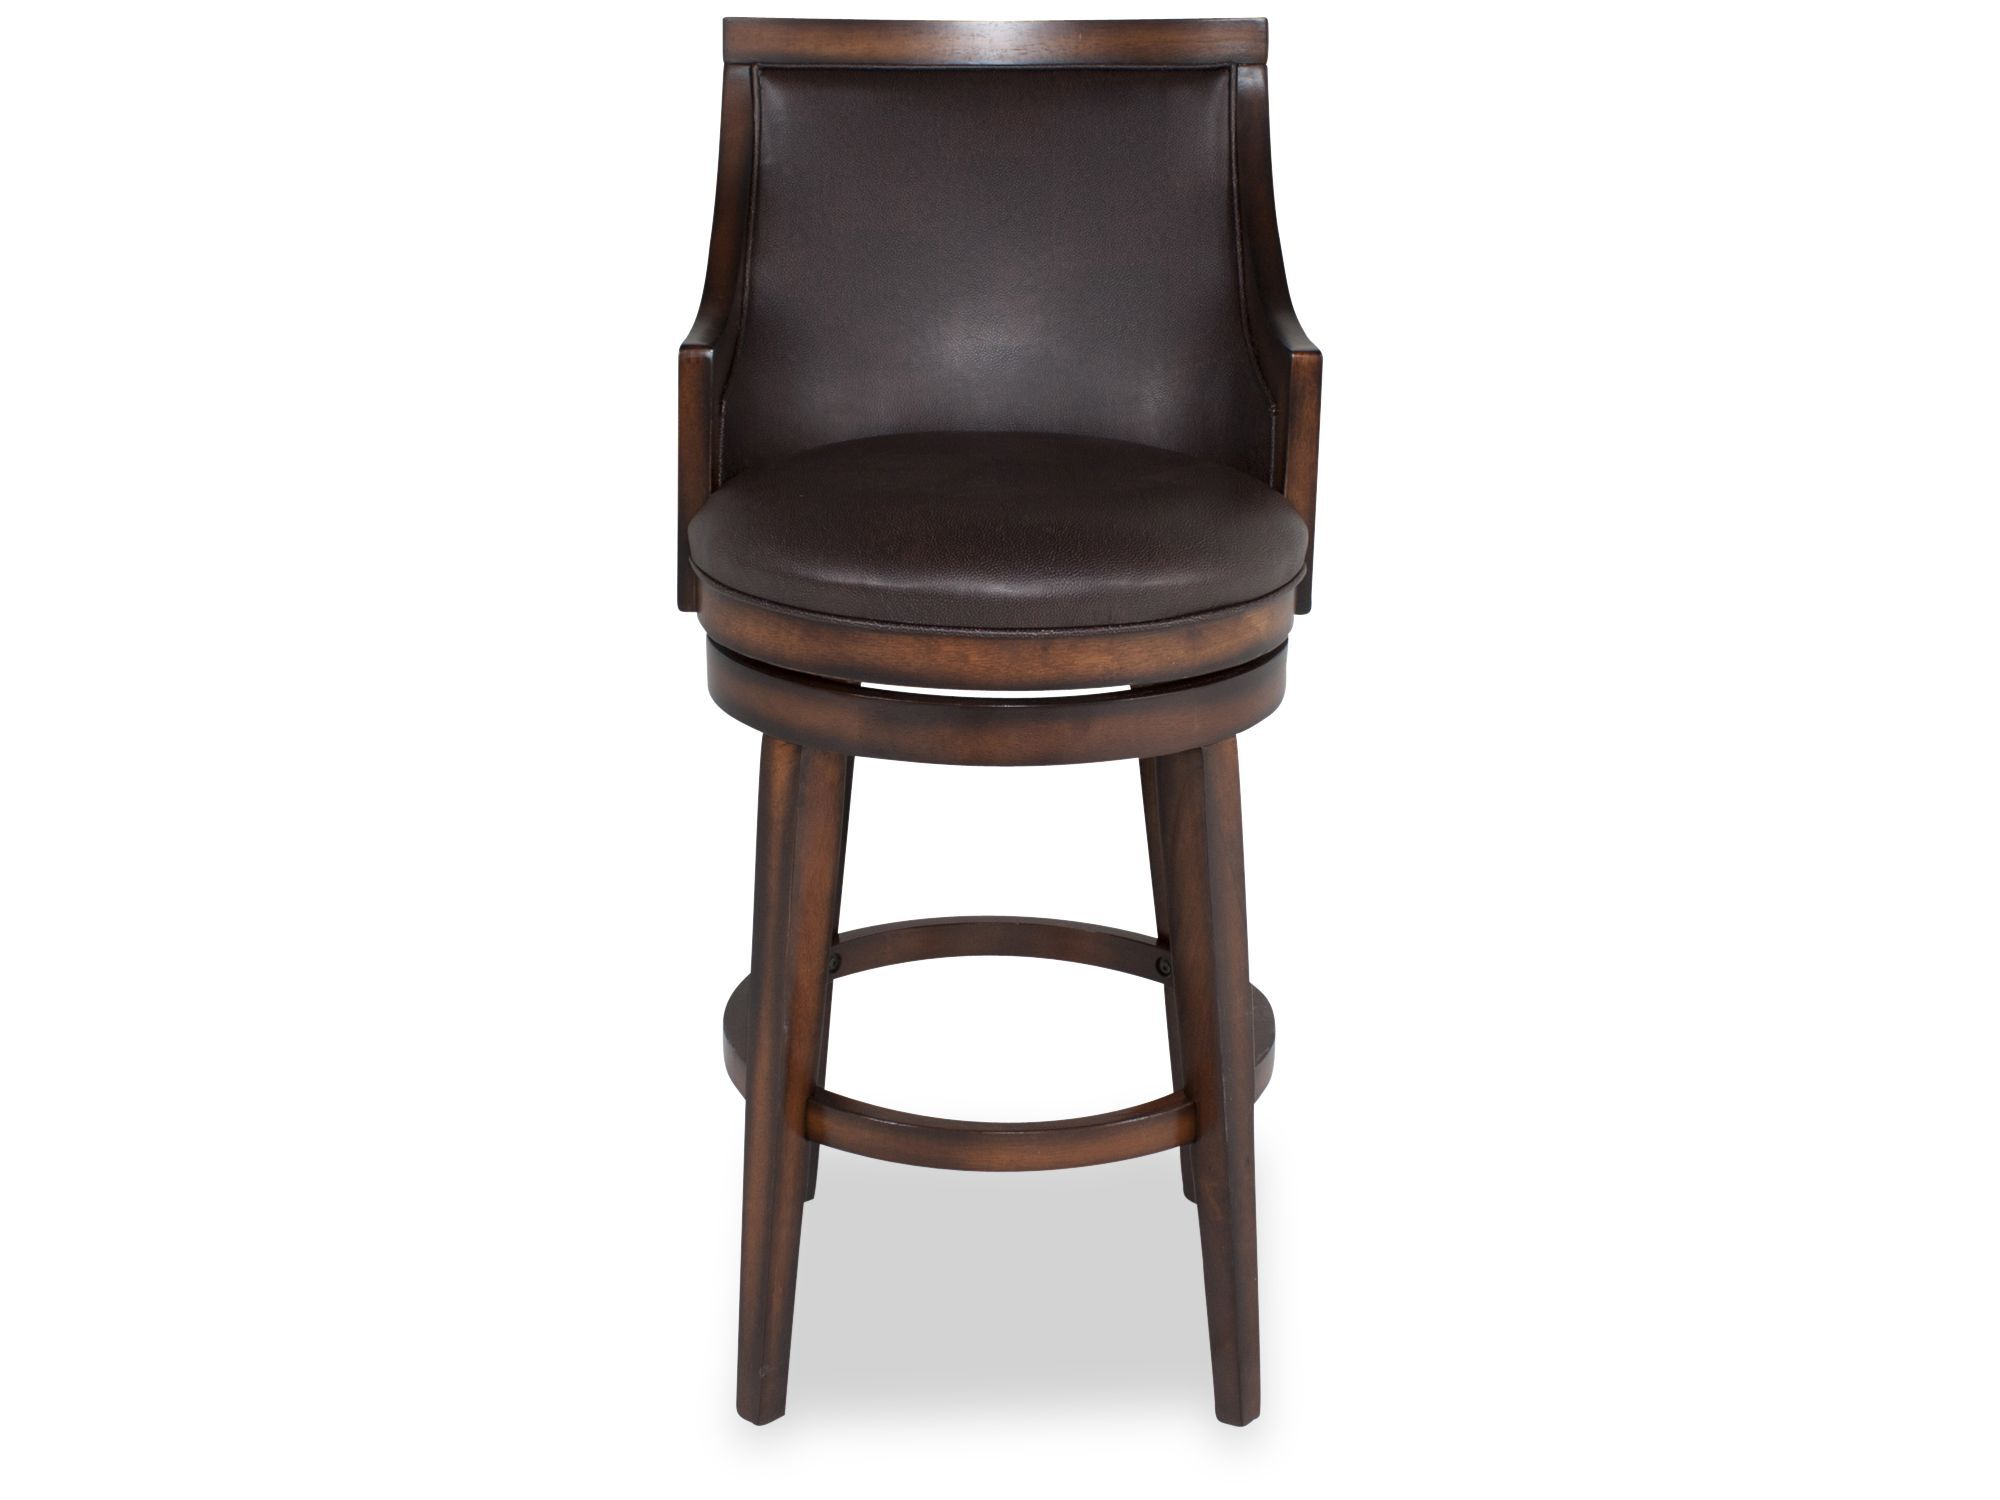 Contemporary Bar Stools Contemporary Bar Stool In Brown Mathis Brothers Furniture